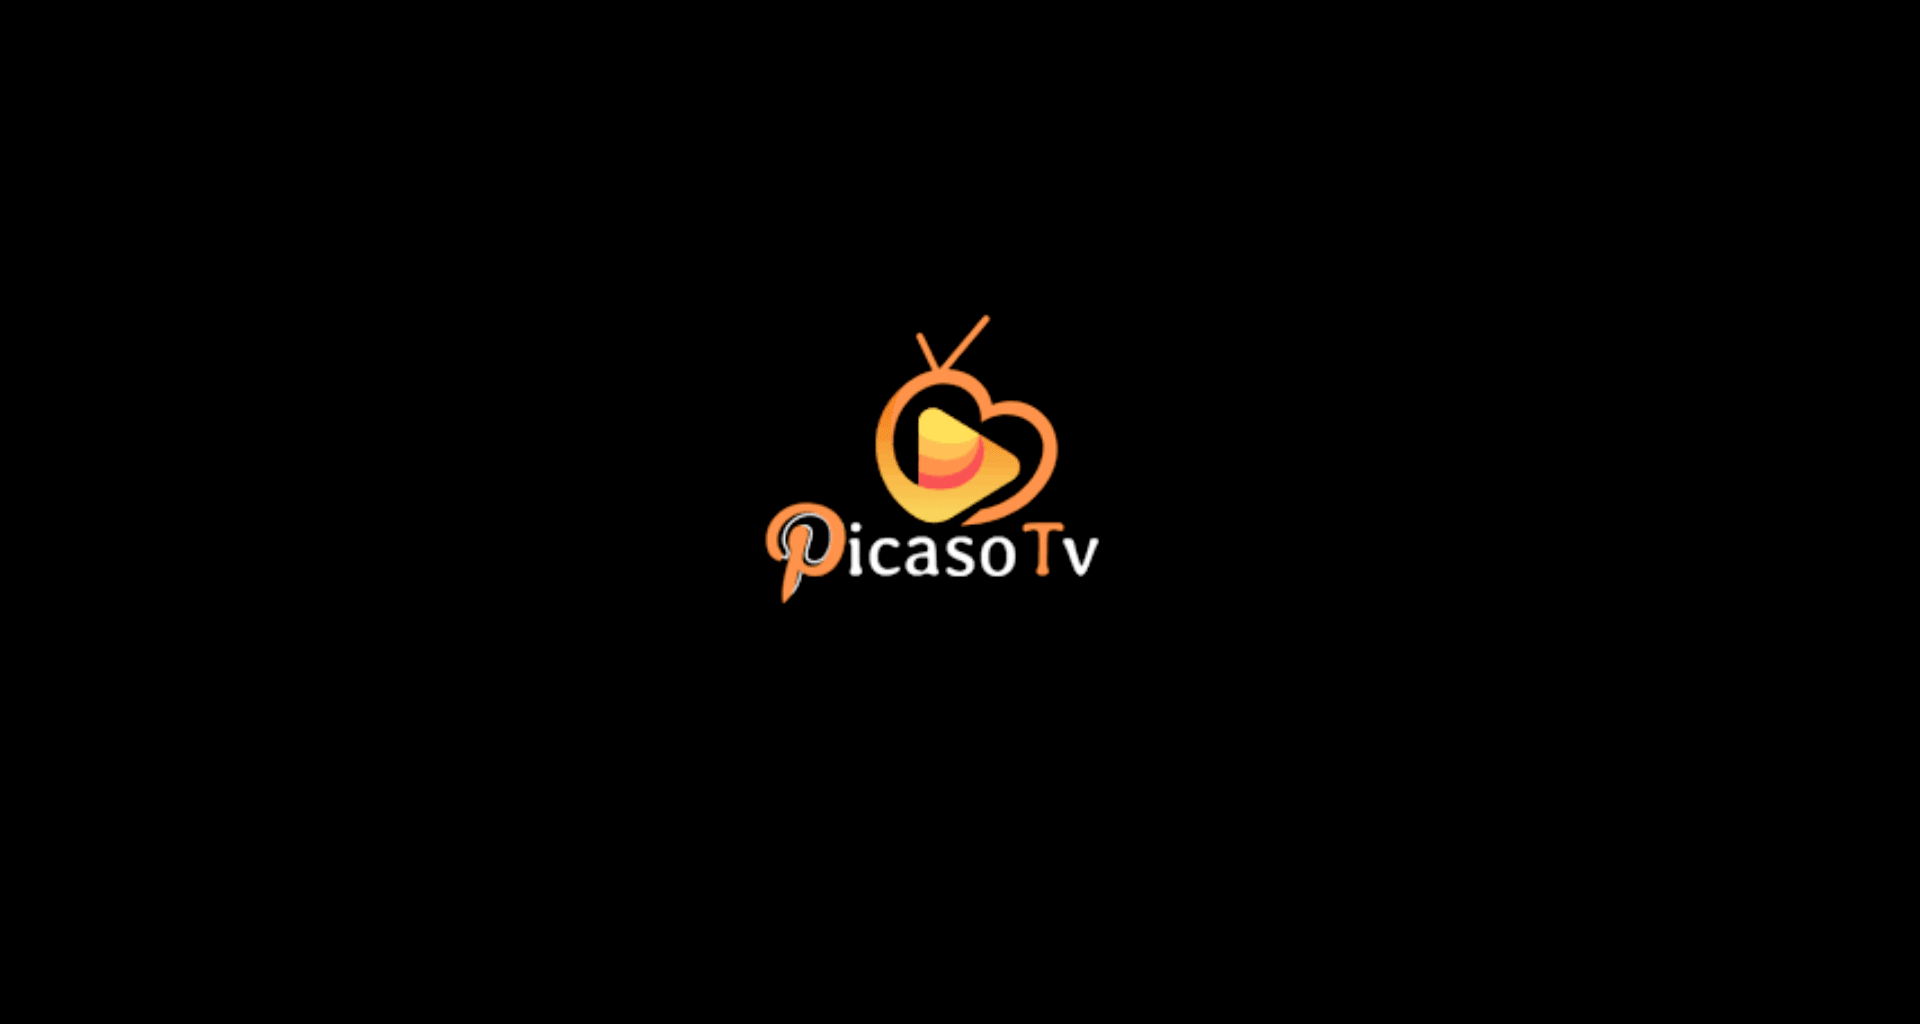 LstOSq - PicasoTV Apk (Ads Removed) - Watch Movies, TV series, and Live IPL